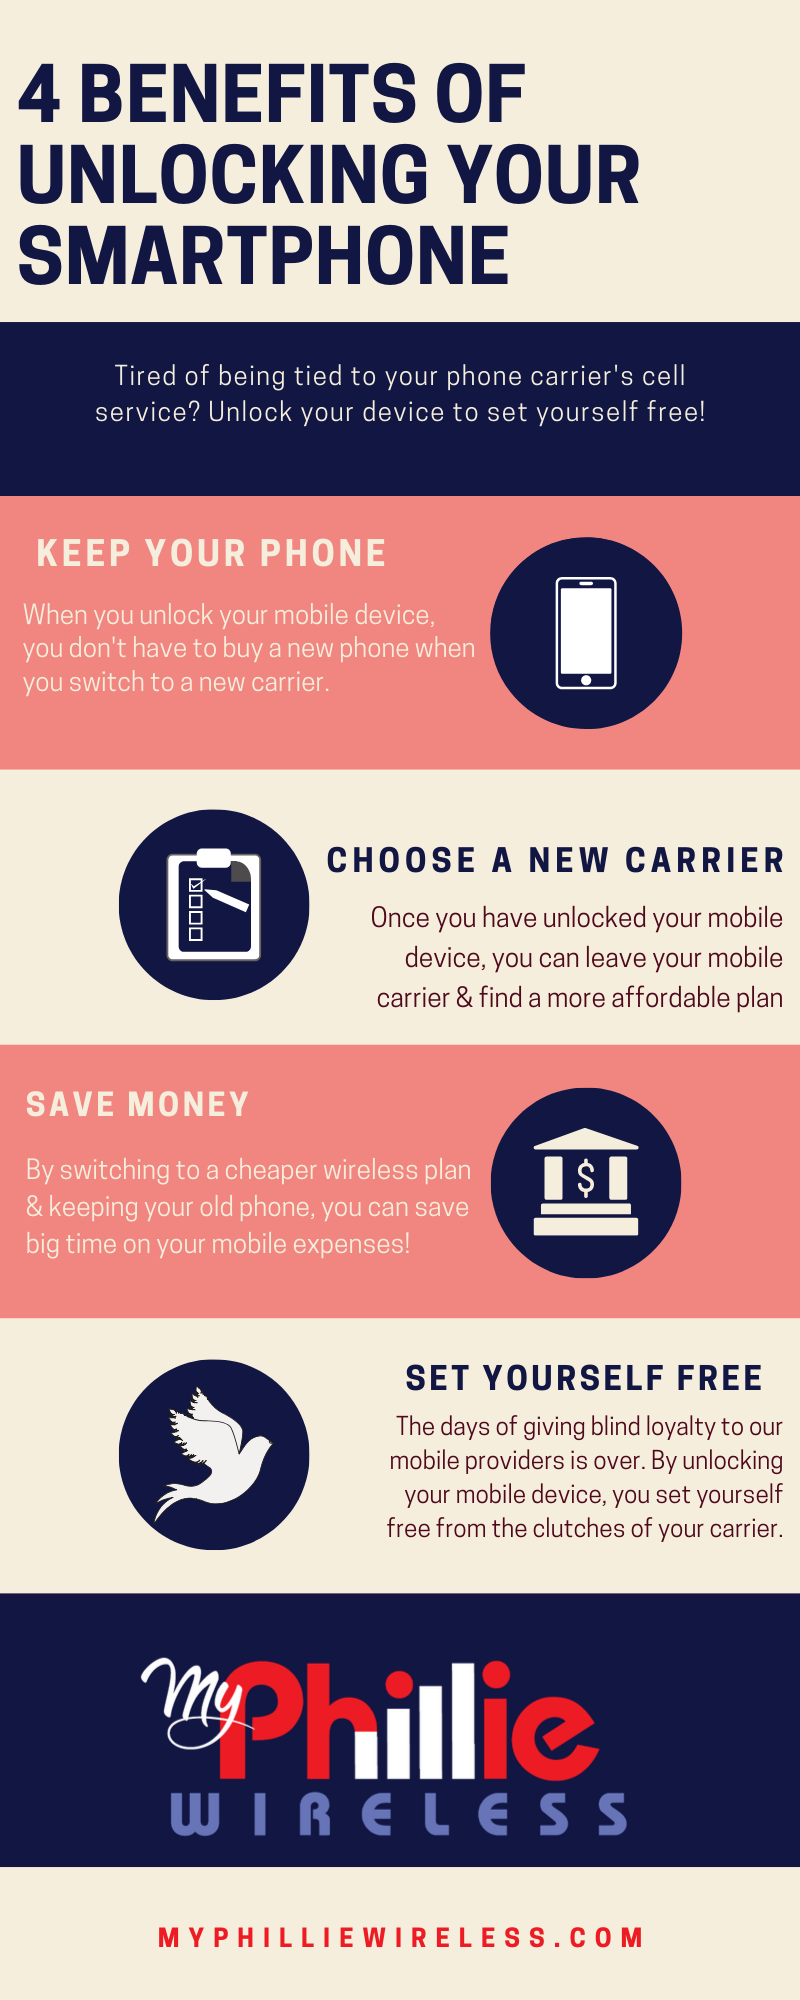 My Phillie Wireless_2019_Infographic 1.png